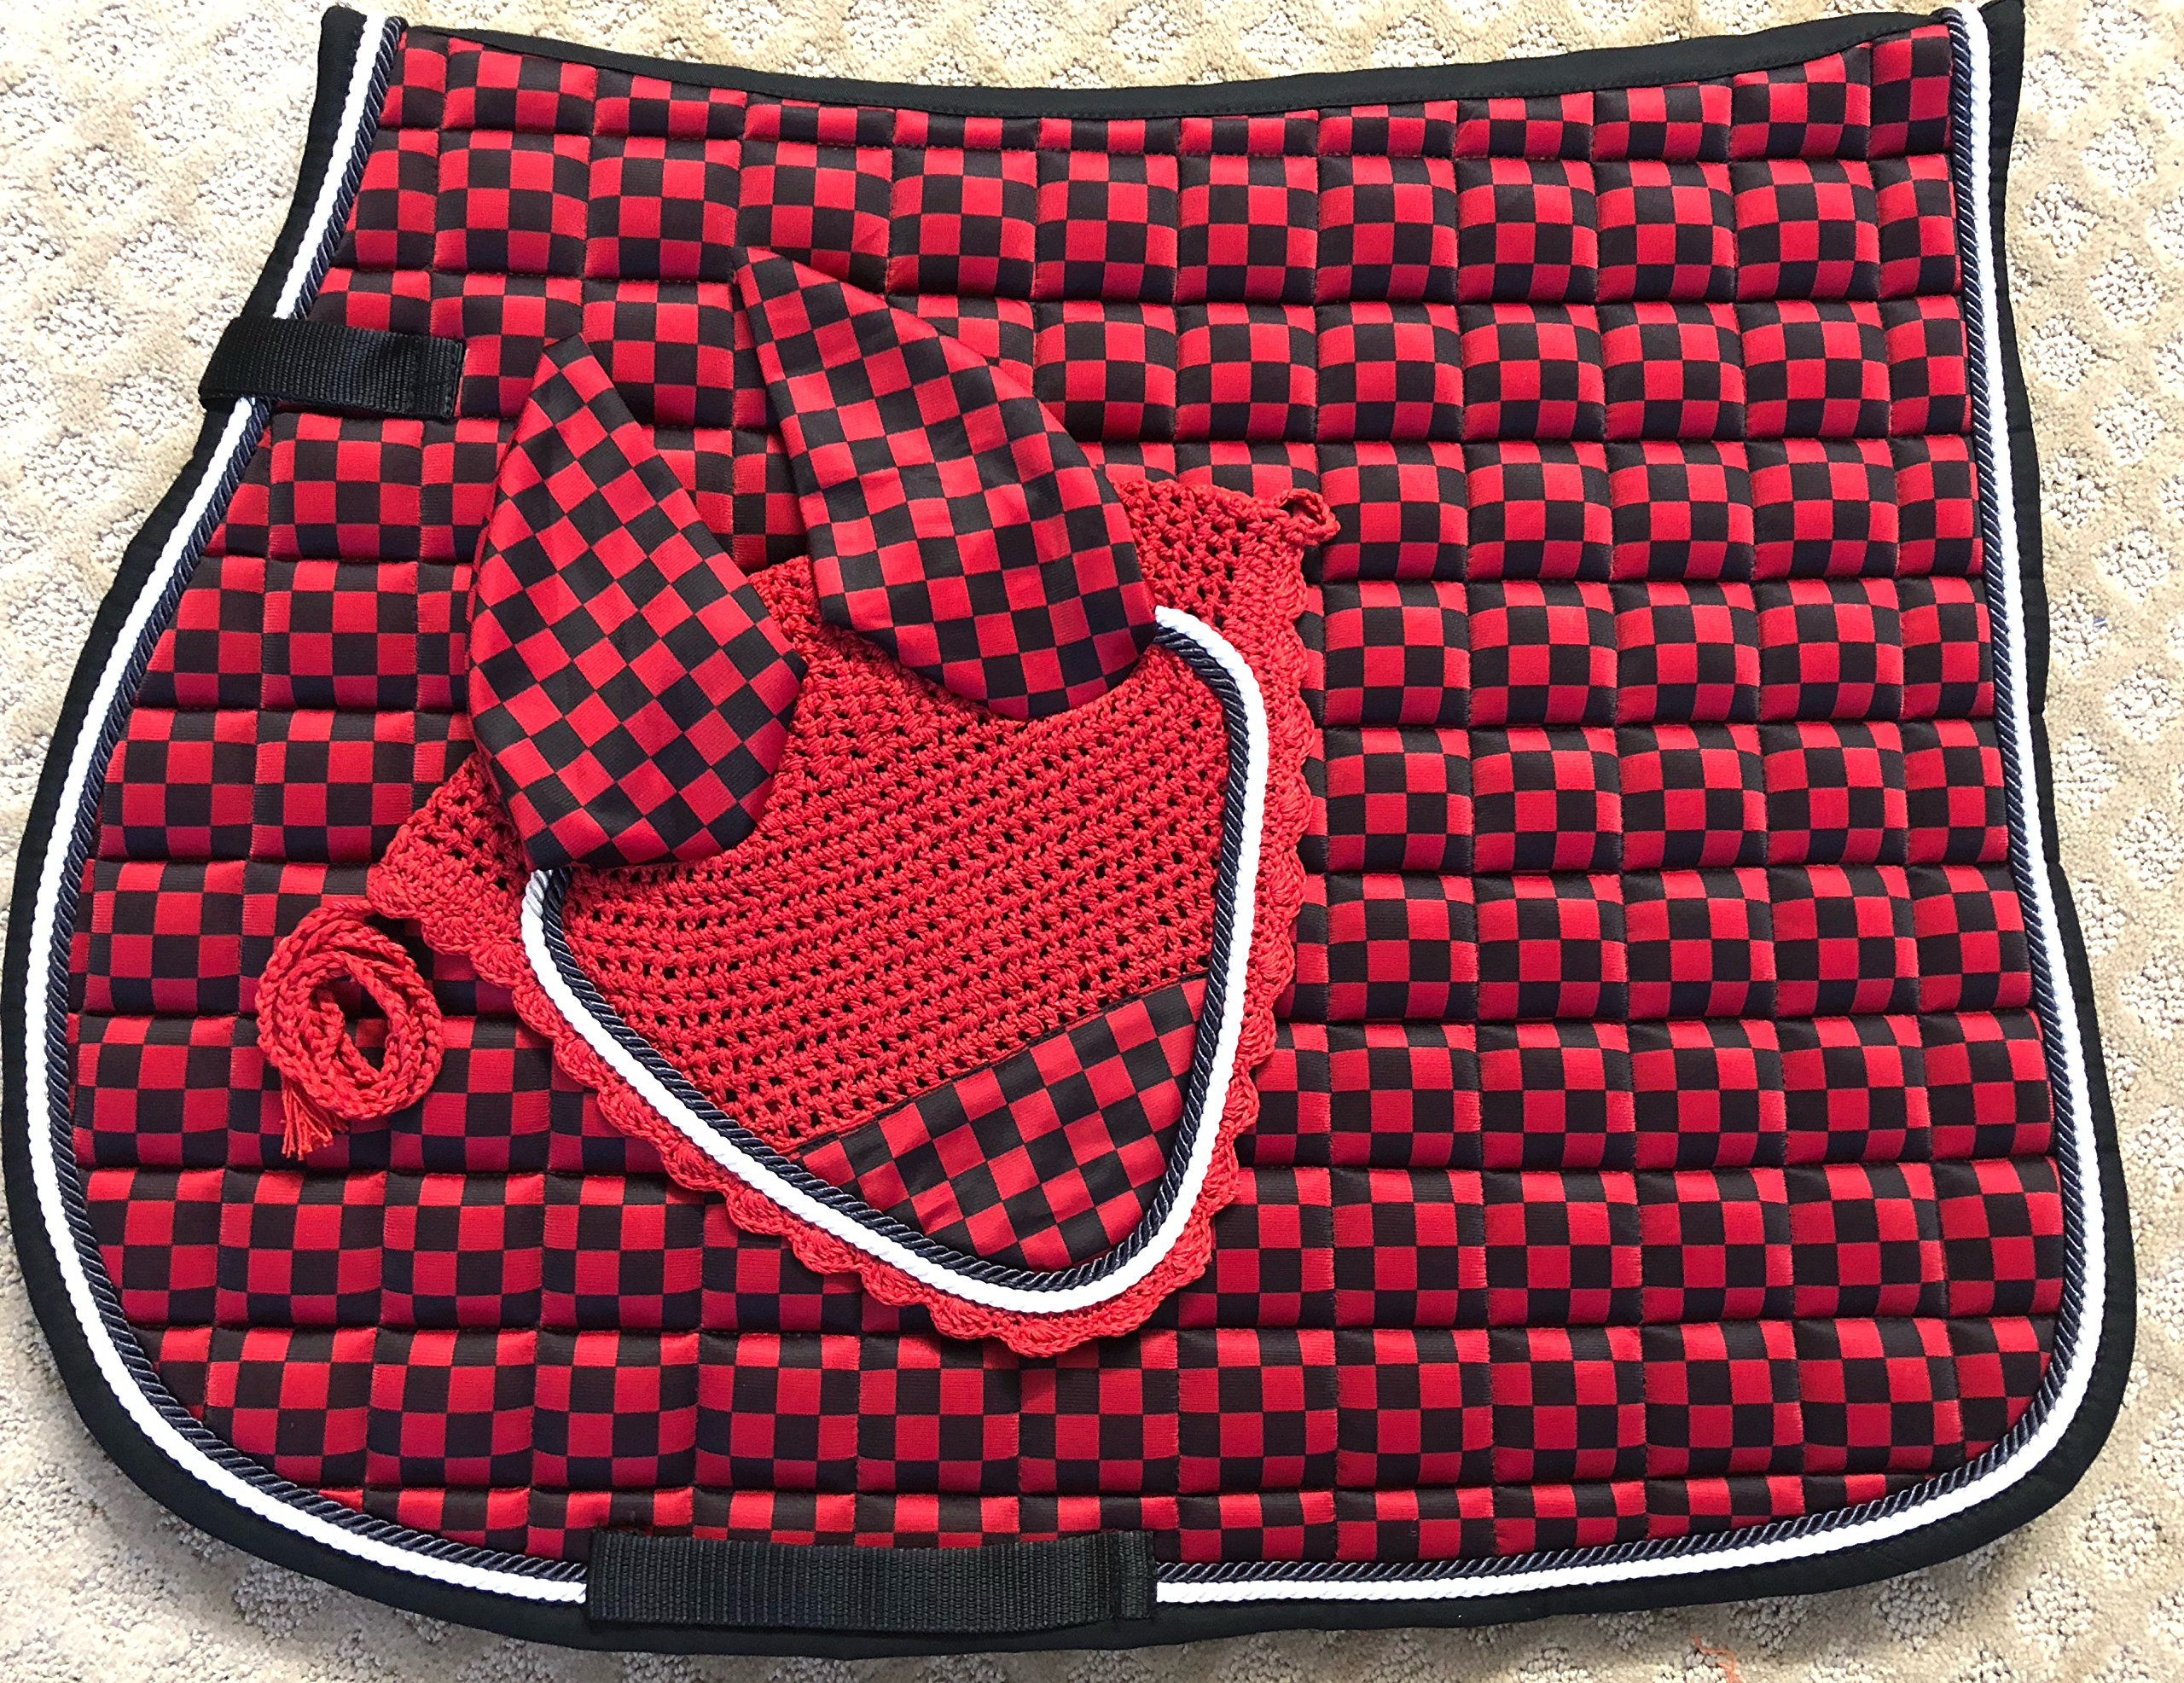 Lift Sports New Horse English Saddle Pad Set Matching Fly Bonnet Veil Ear Net Polyester Hand Made Crochet Full Size Equestrian Shows Tack by Lift Sports